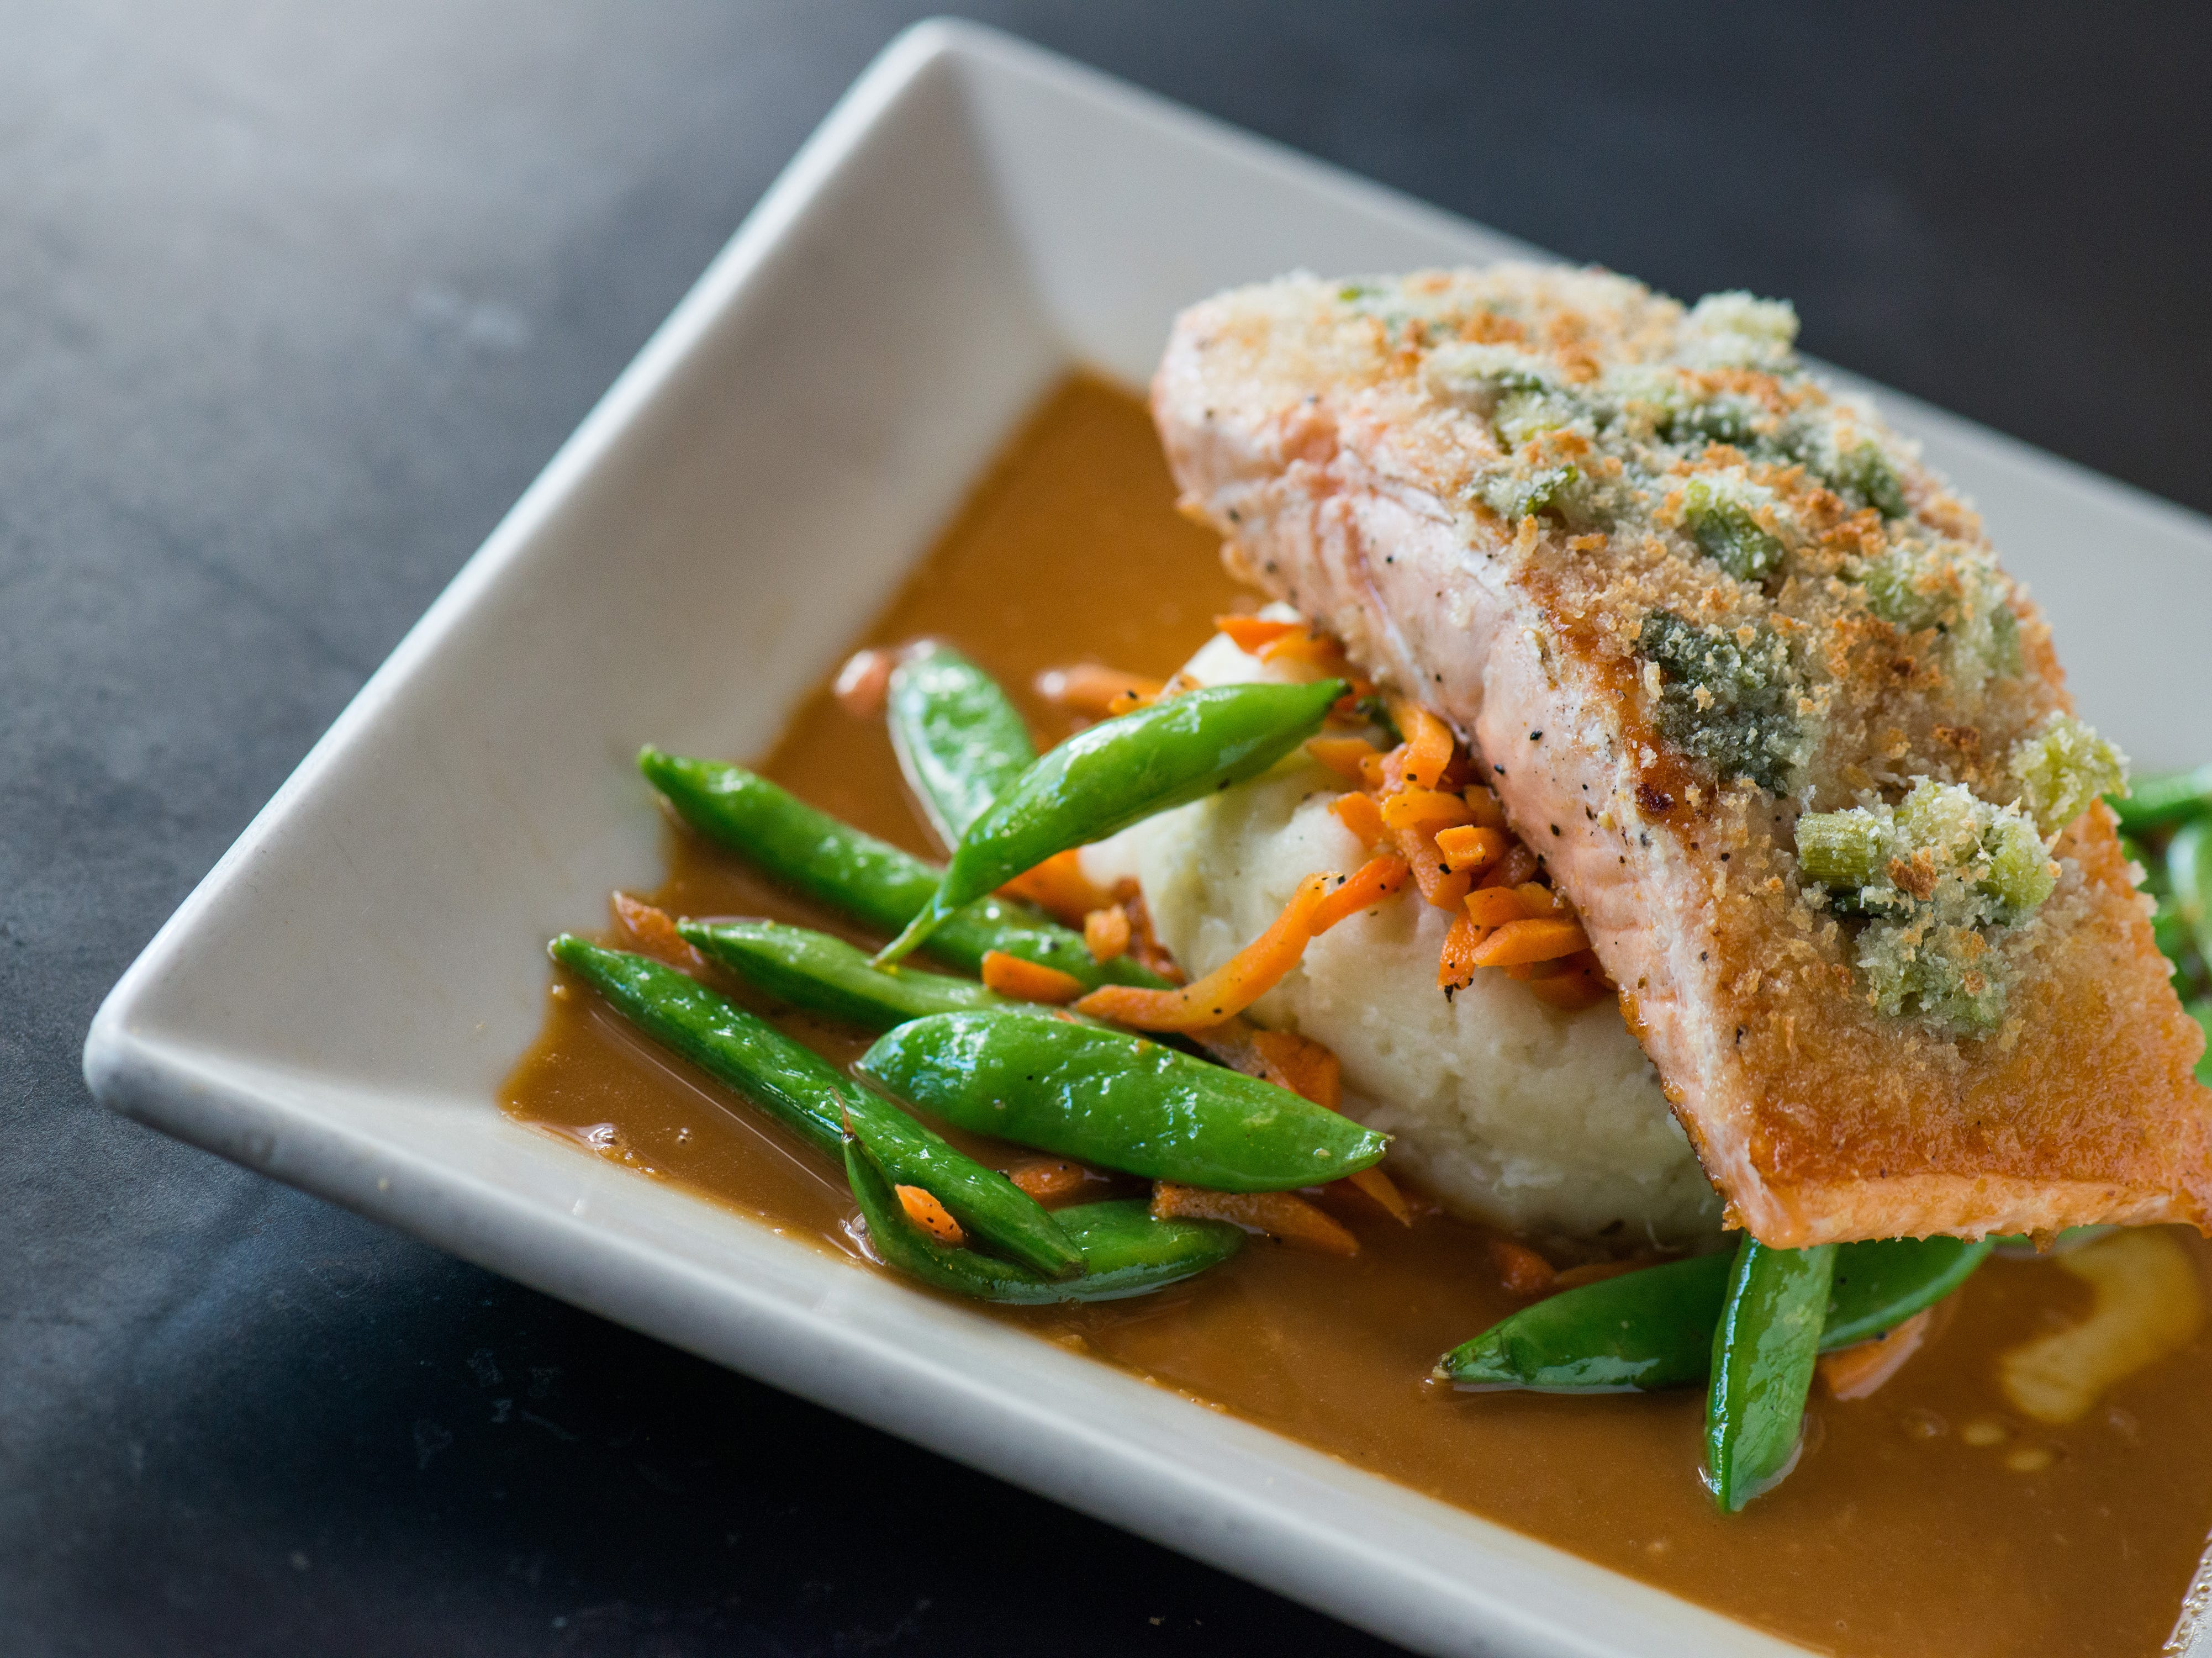 Yard House's Ginger Crusted Salmon includes wasabi mashed potatoes, snap peas, carrots and spicy peanut vinaigrette.